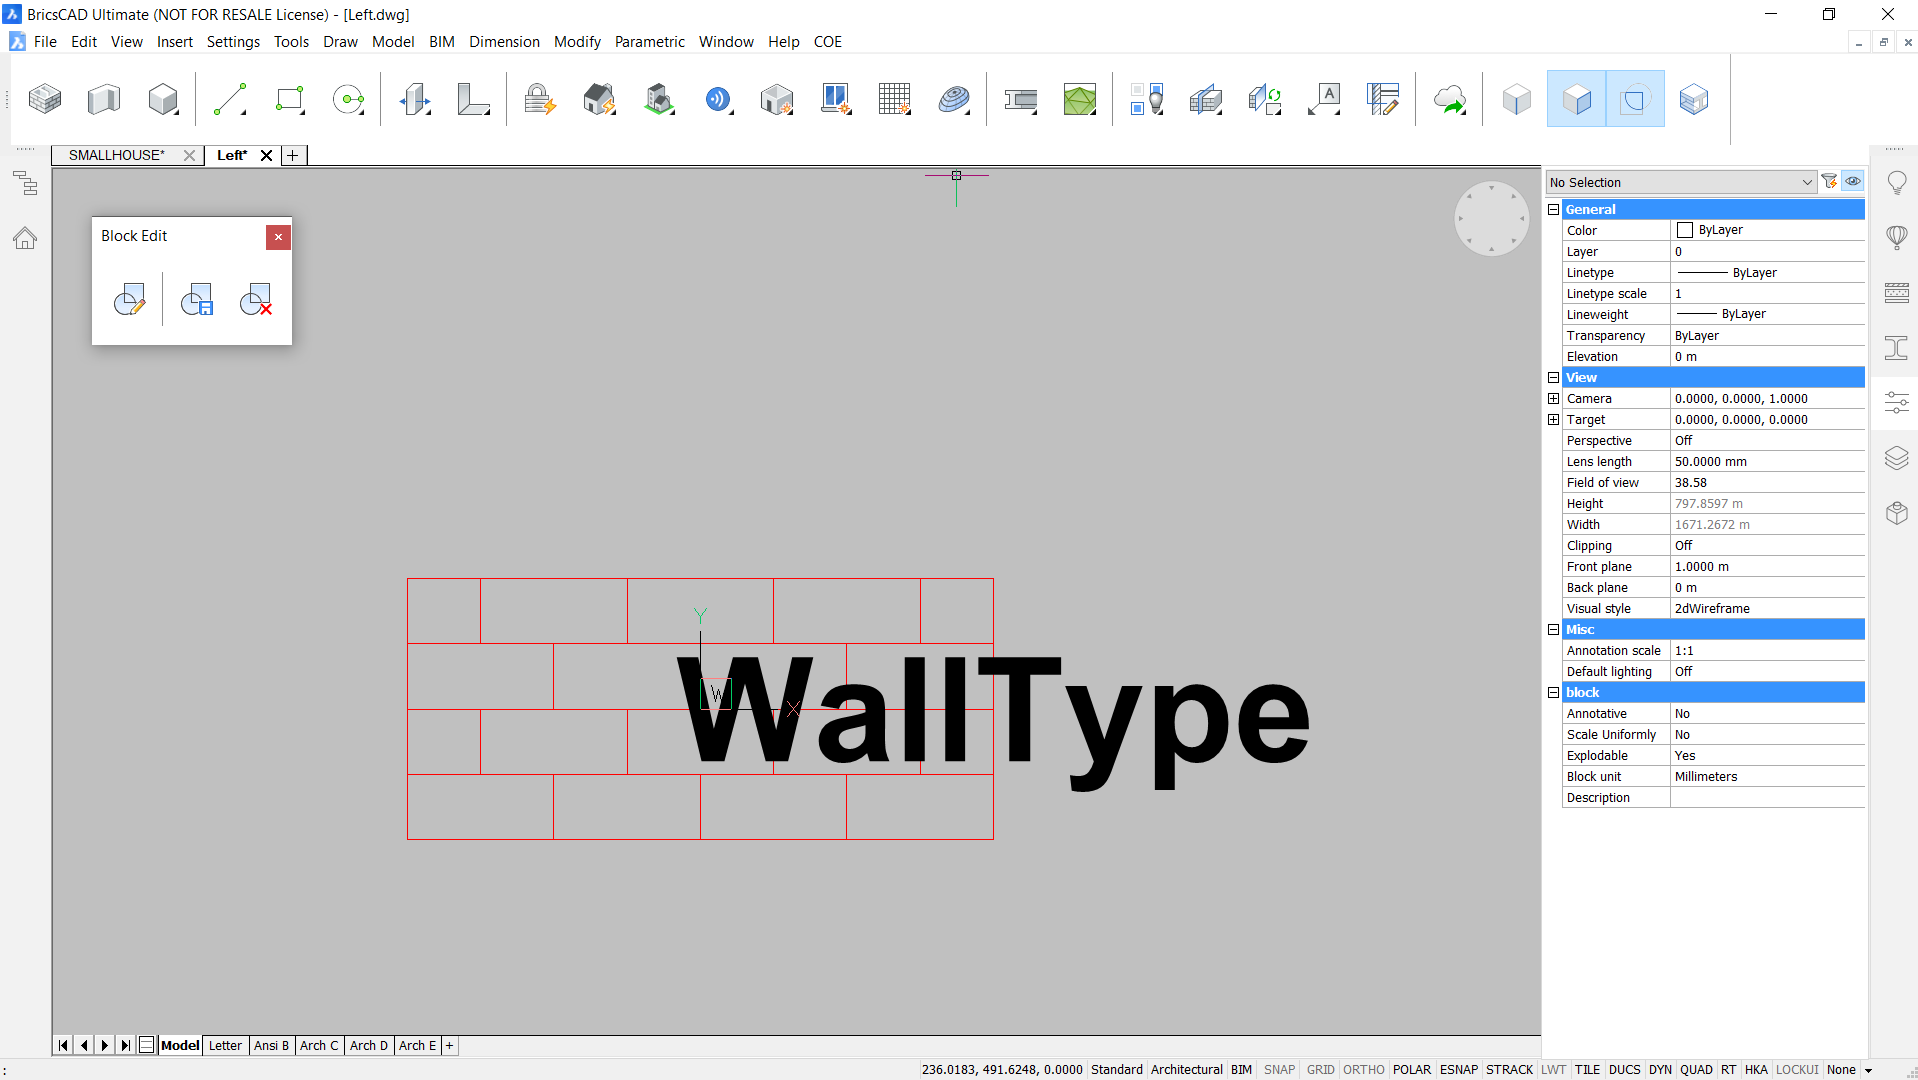 editing the BIMtag in BricsCAD Block editor.